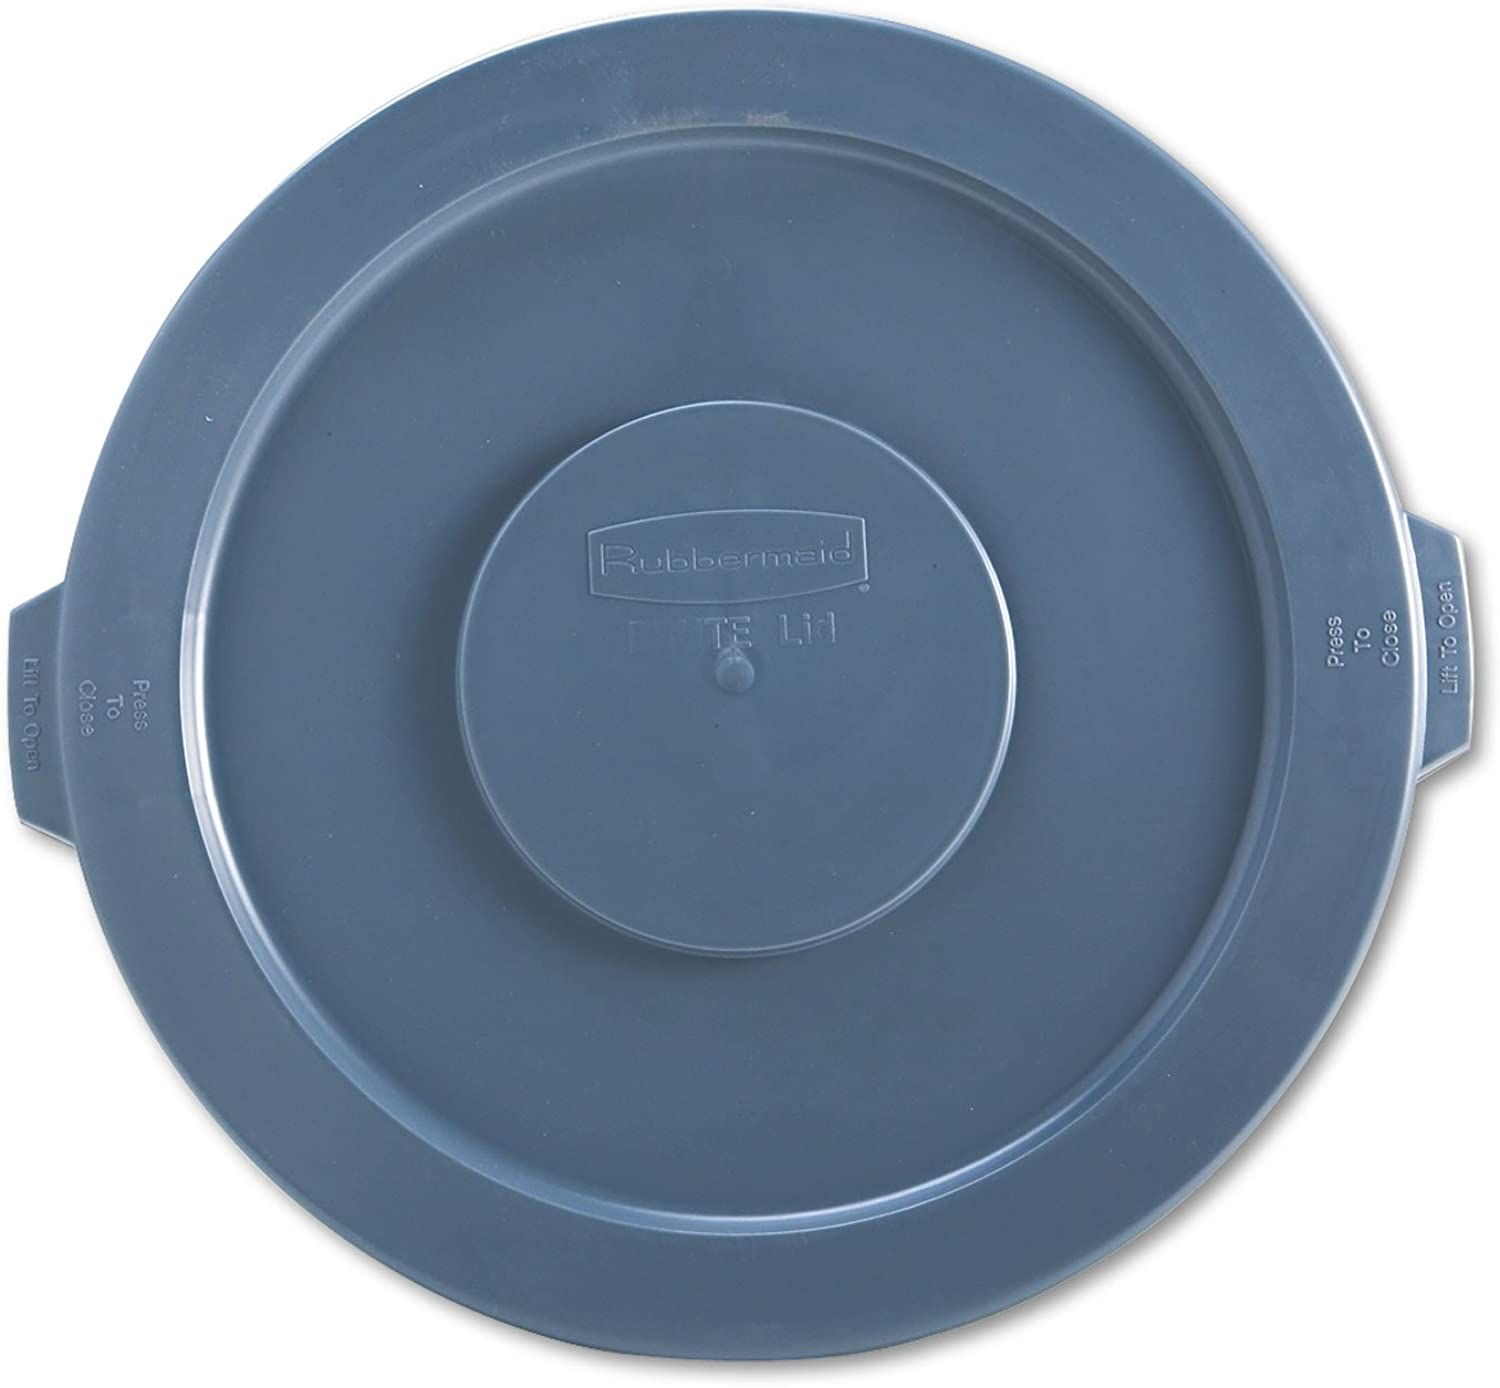 "Rubbermaid 263100GY Round Flat Top Lid, for 32-Gallon Round Brute Containers, 22 1/4"", Dia, Gray"